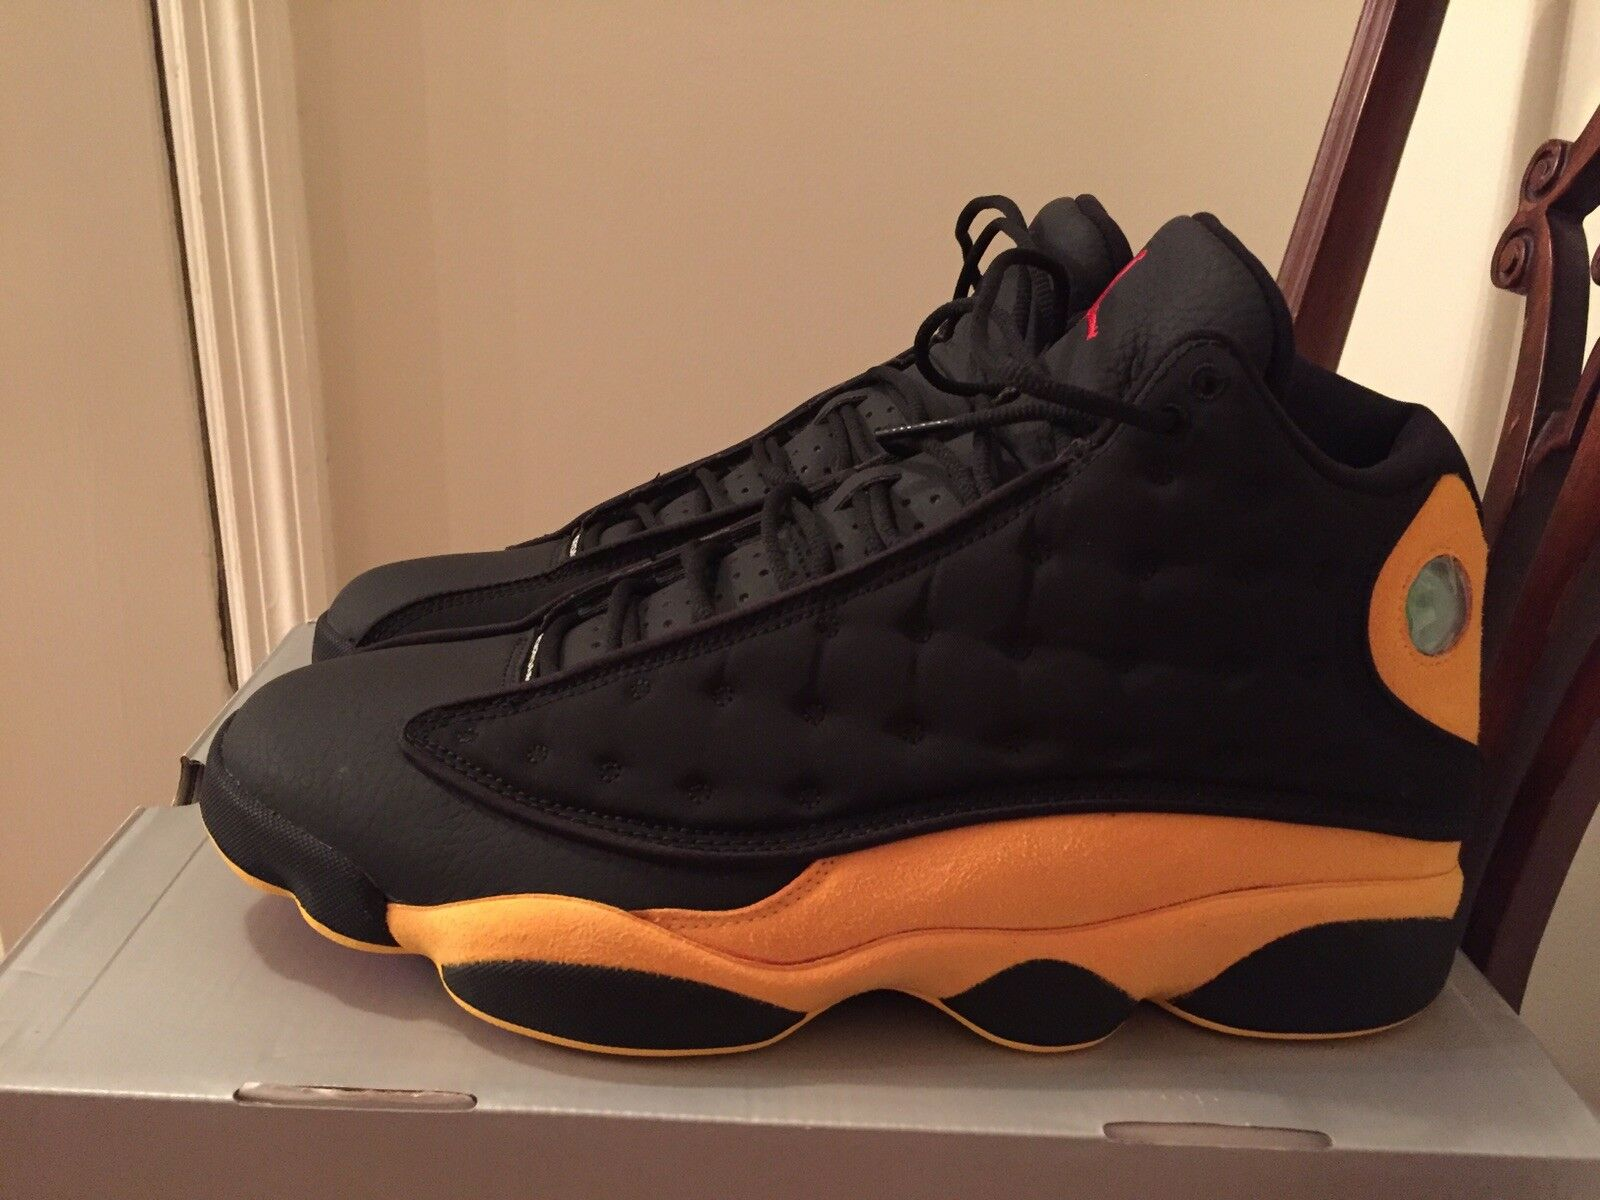 64650af1a506 Air Jordan 13 Retro XIII Melo Carmelo Anthony Class of 2002 414571-035 Size  13